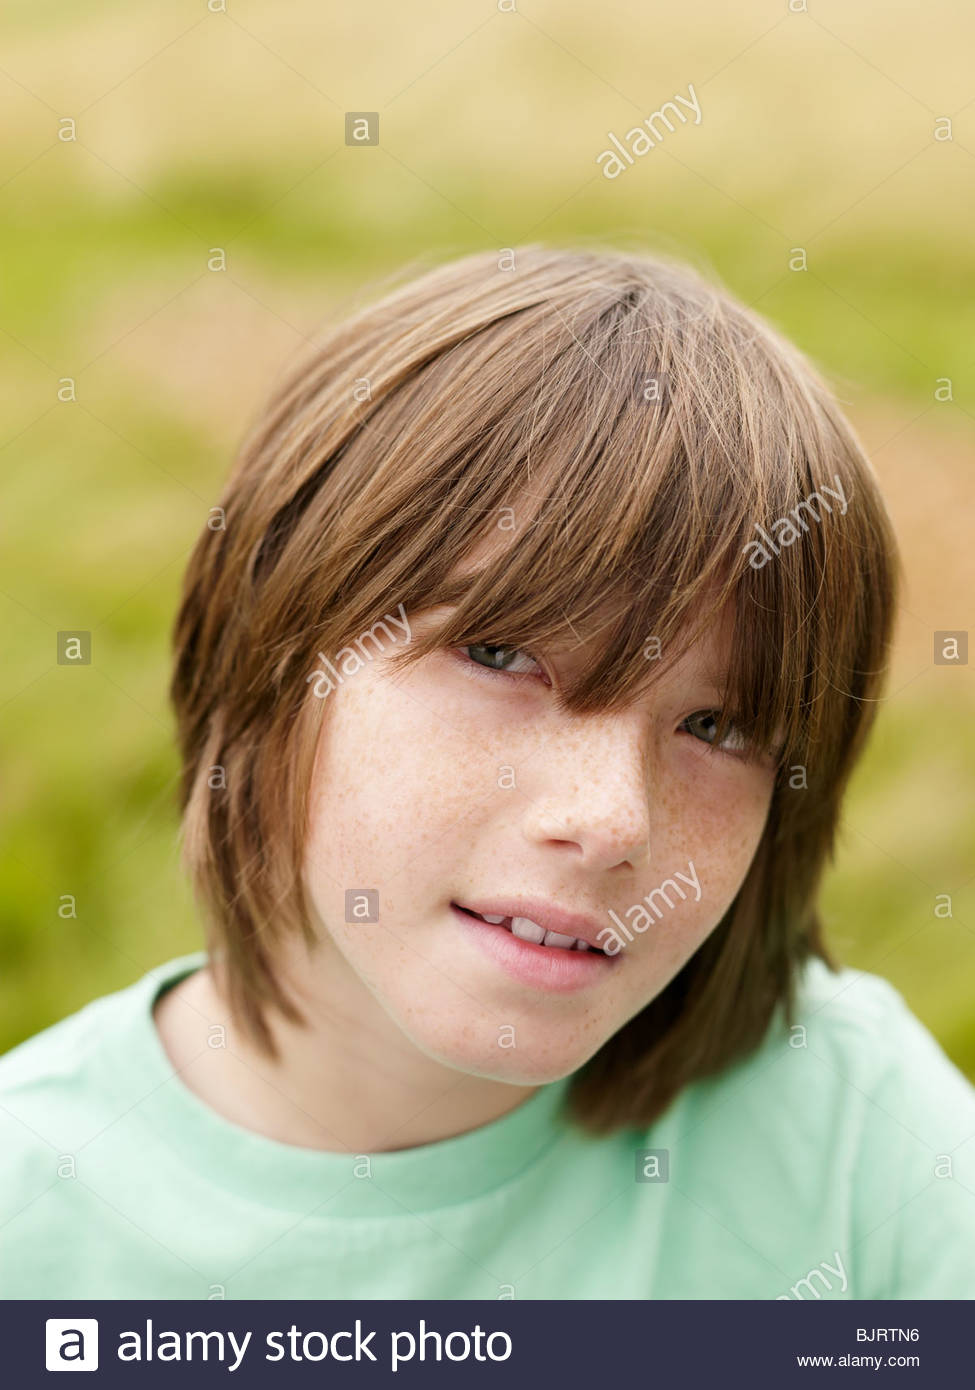 Portrait Of A Long Haired Boy Stock Photo: 28798482